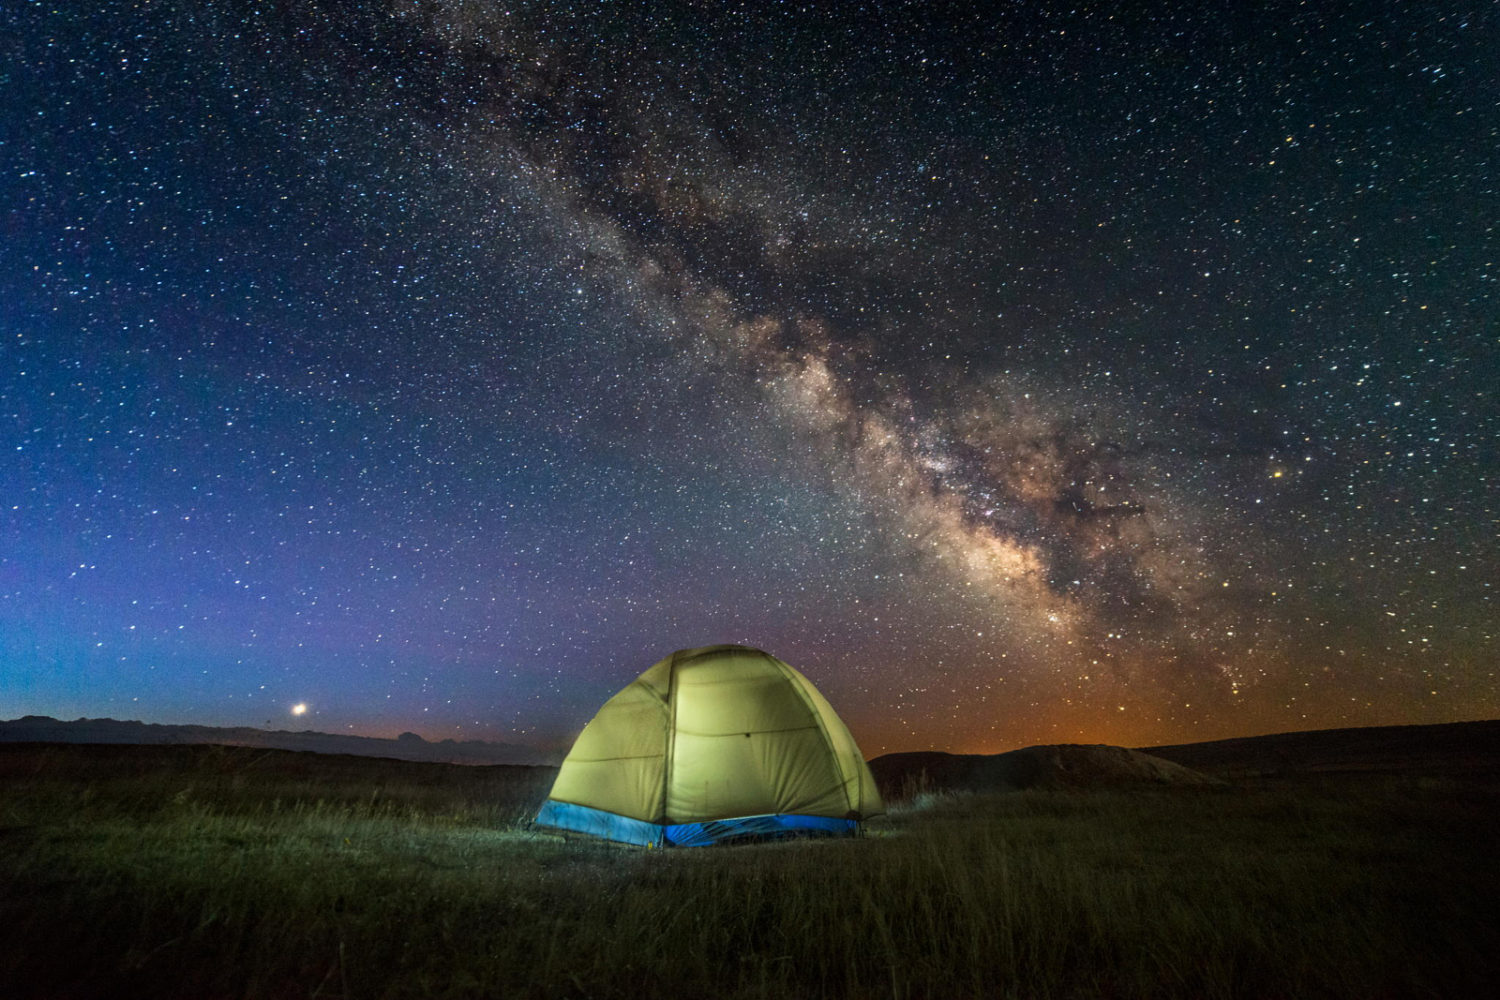 Go Stargazing With These 21 Stellar Night Sky Photos